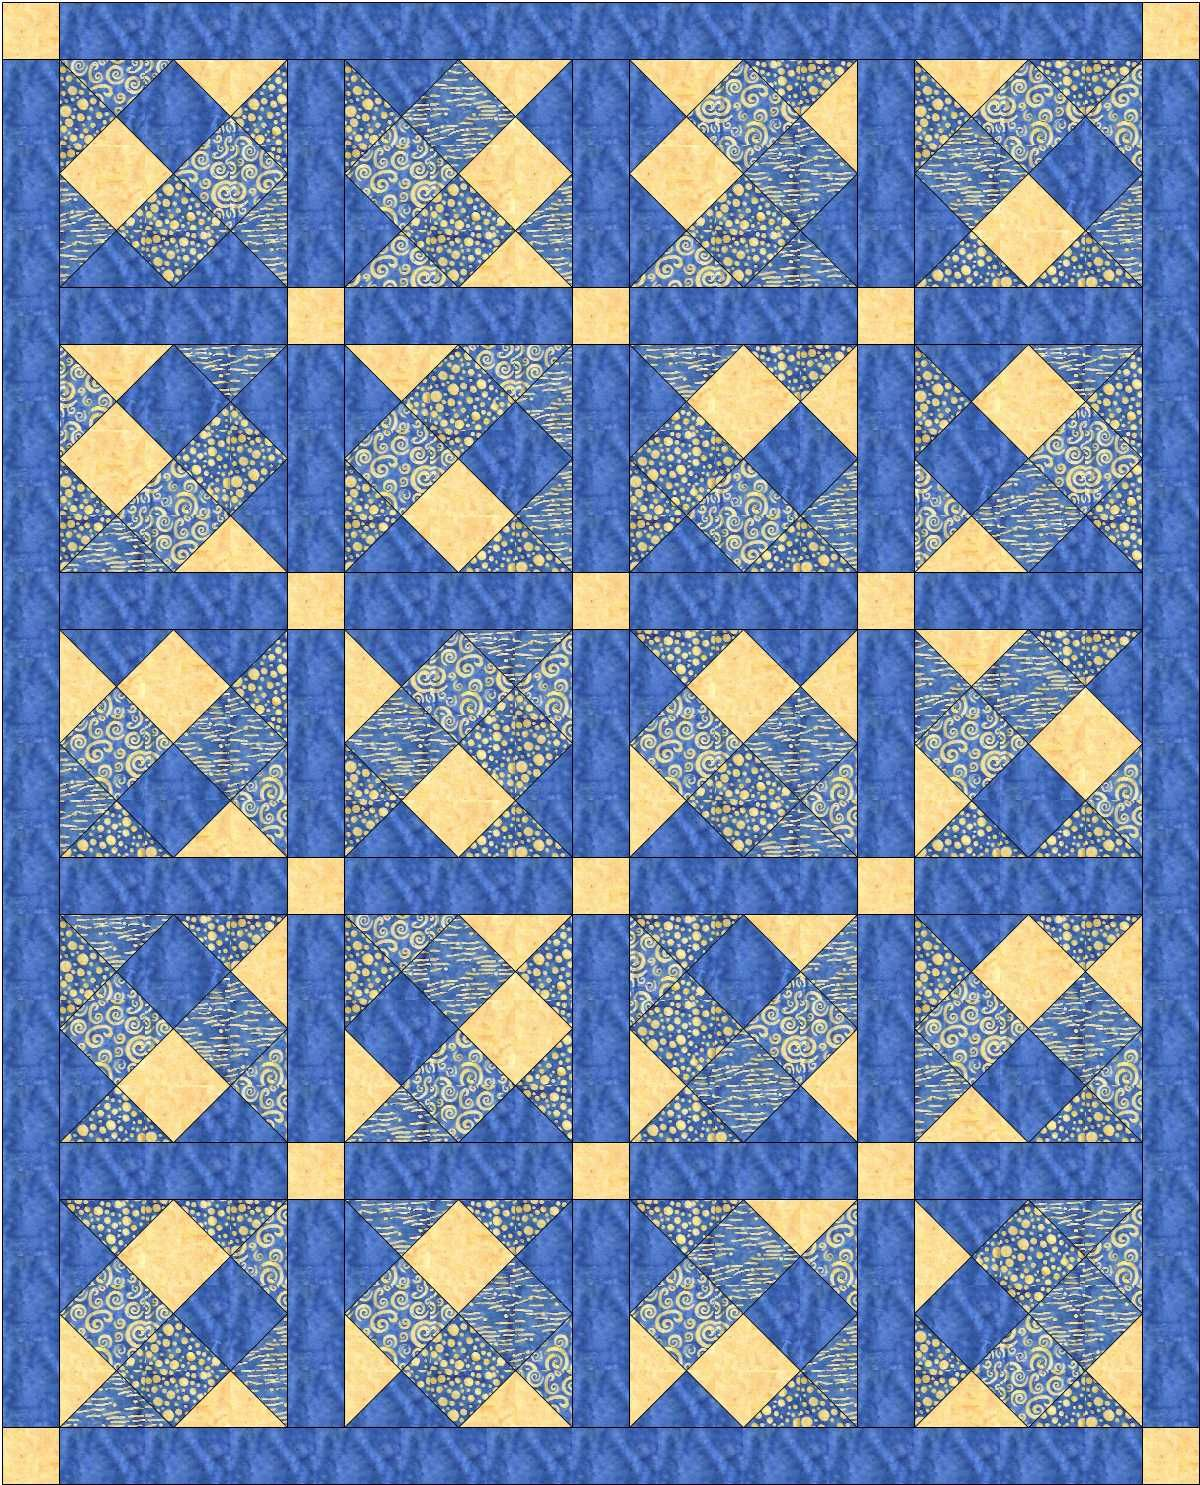 Blue And Yellow Quilt Yellow Quilts Blue Quilts Batik Quilts